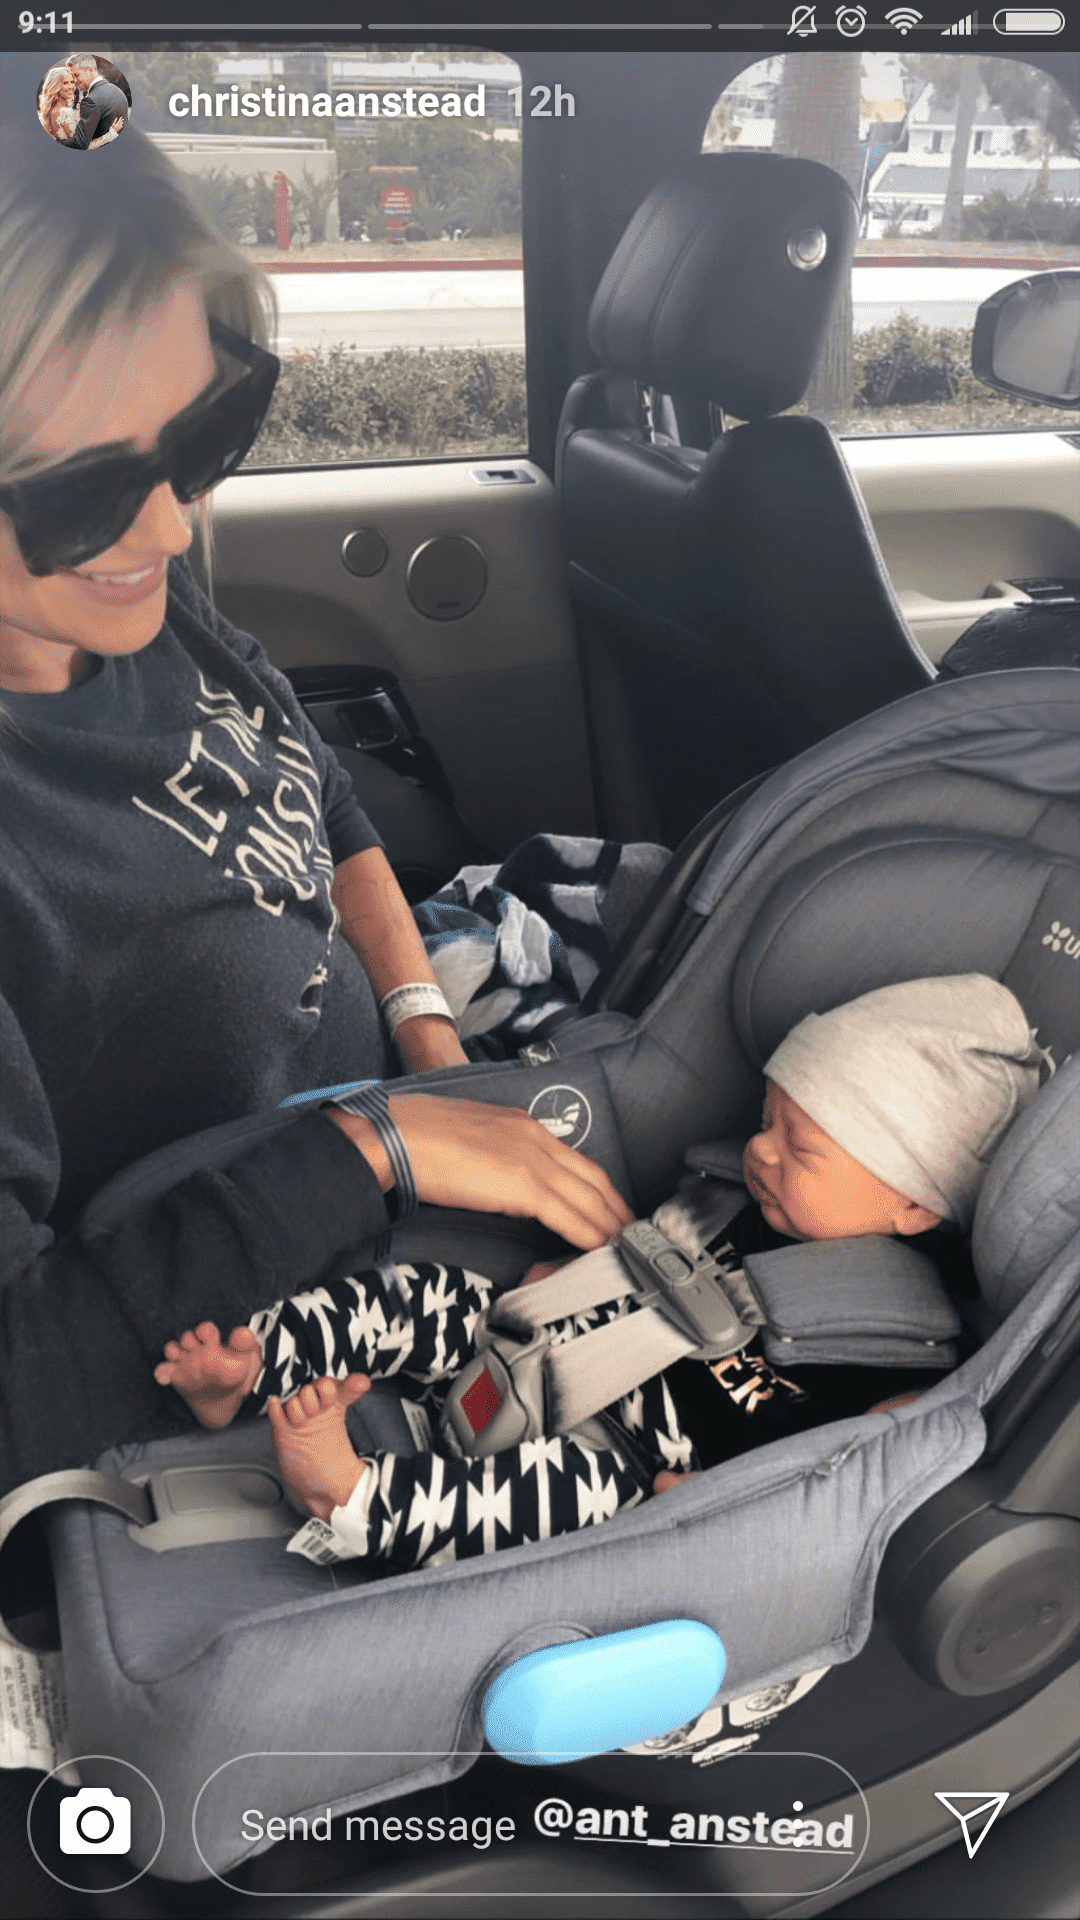 Christina Anstead on her way home from the hospital after giving birth to her baby boy, Hudson | Photo: instagram.com/christiananstead